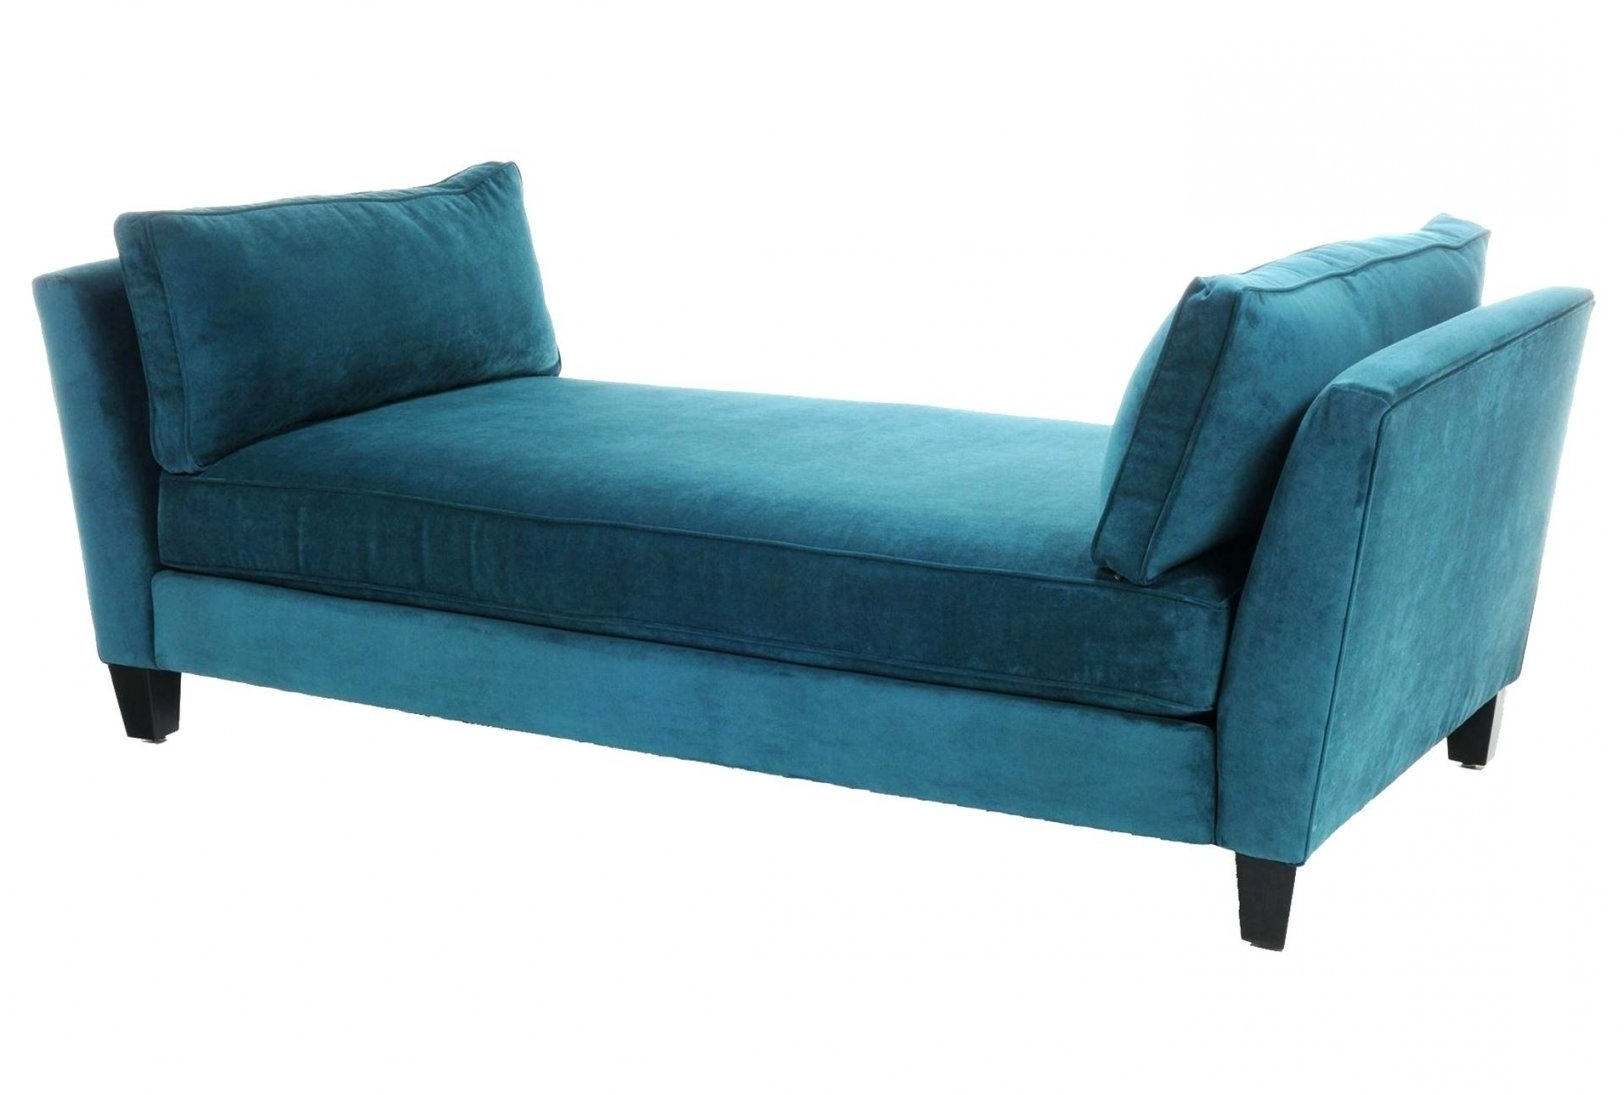 Most Recently Released Daybed Chaise Lounge Sofa Within Daybed Chaises (View 8 of 15)